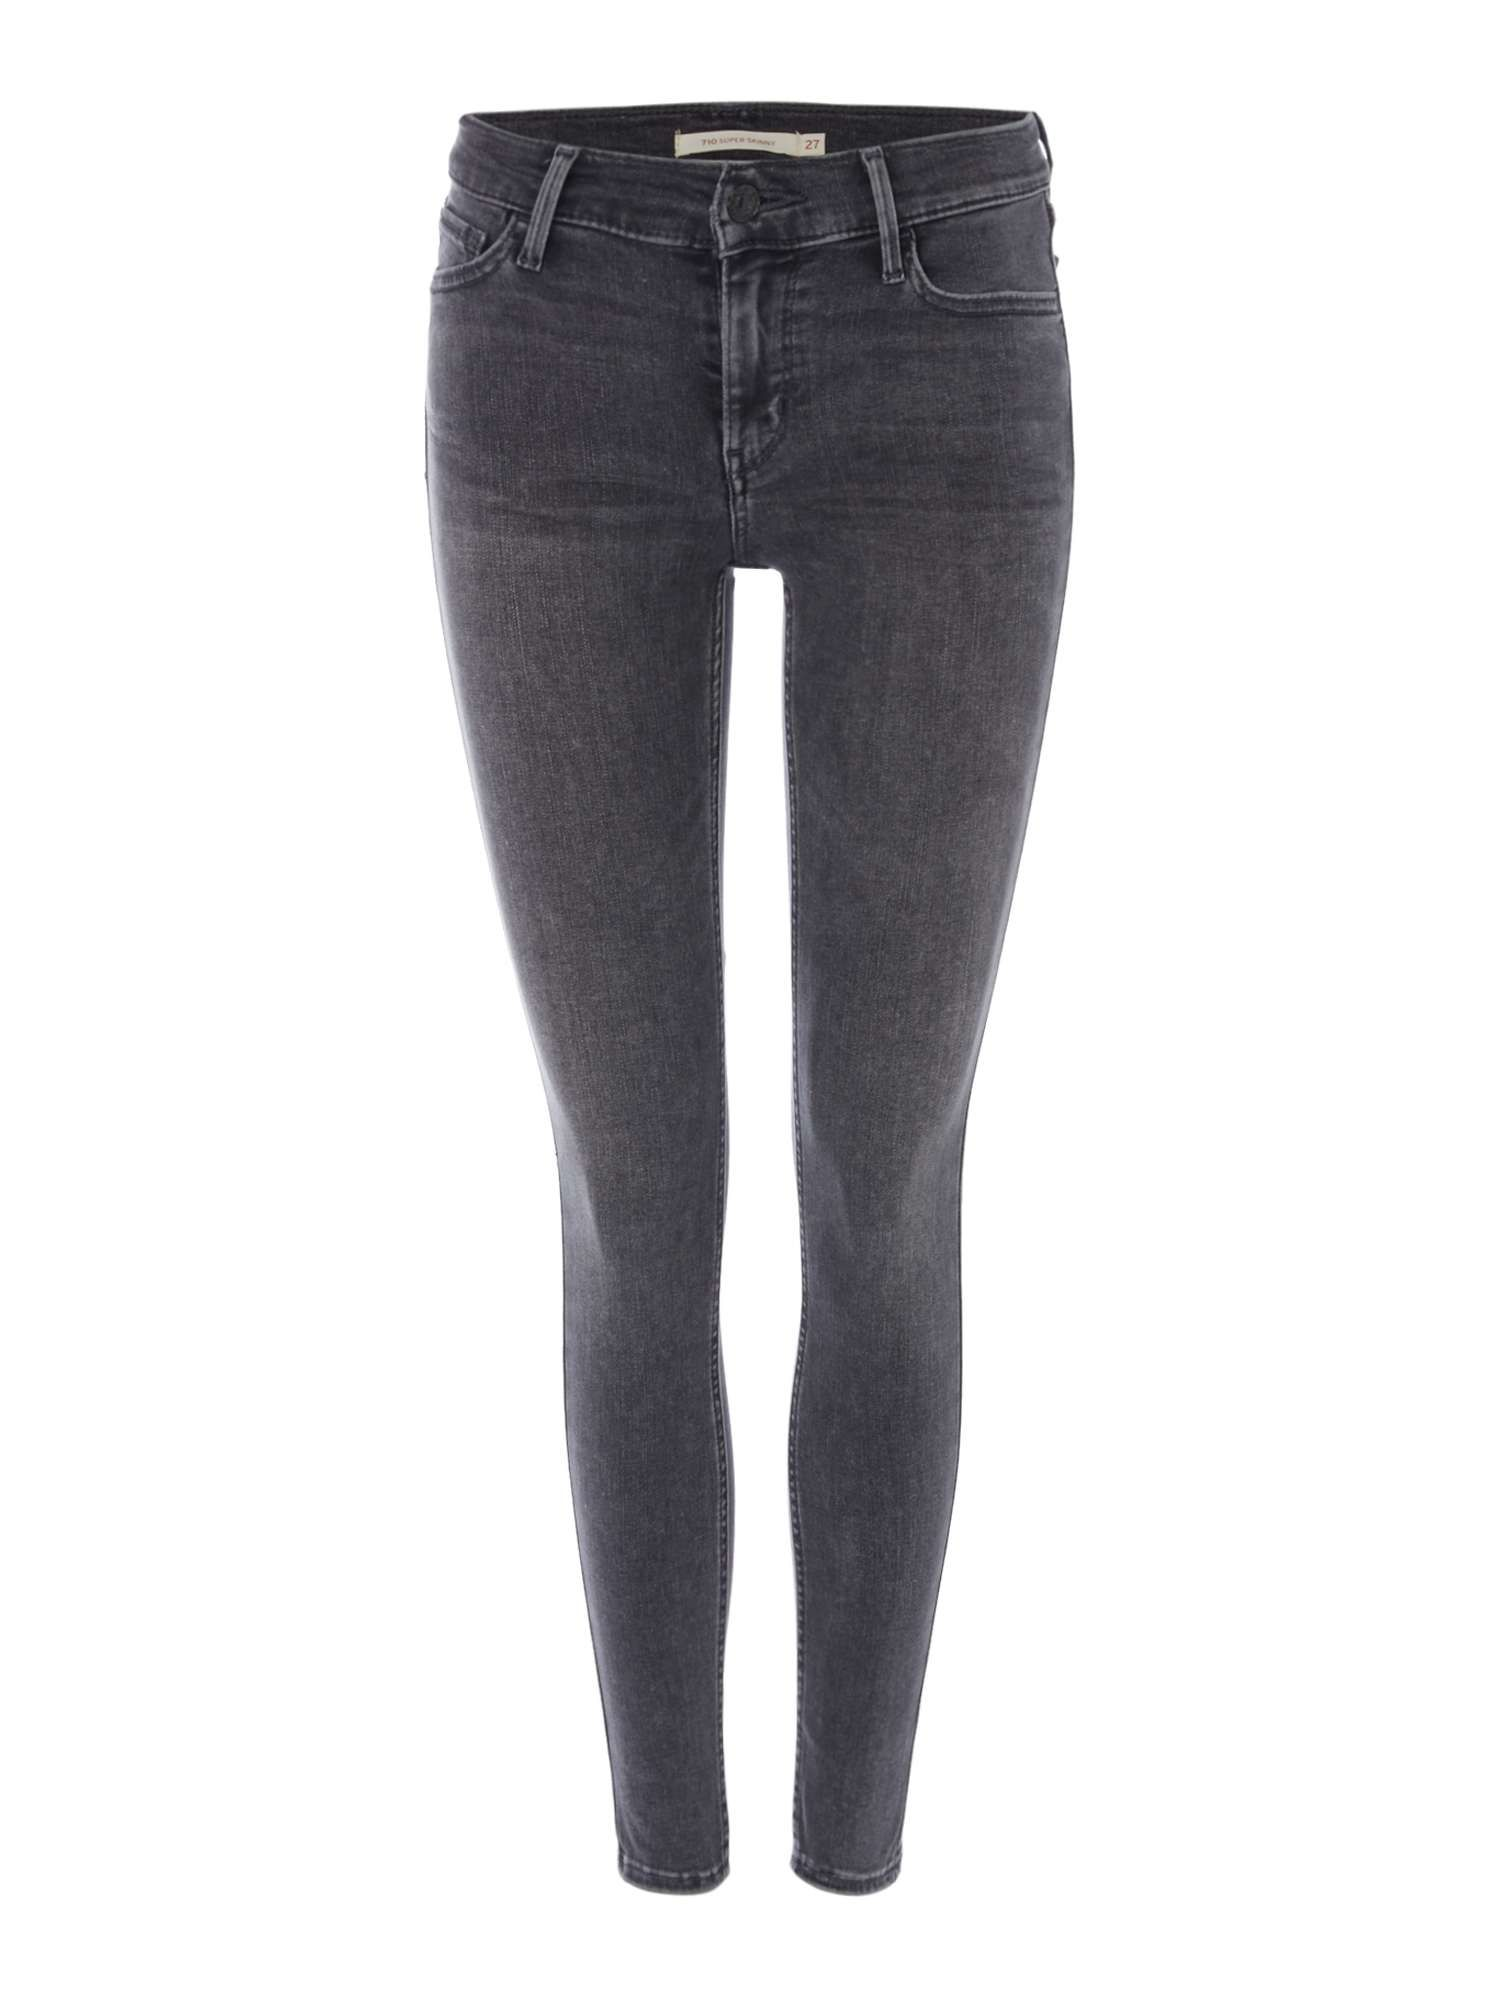 Best jeans our pick of the 25 best jeans for women publicscrutiny Gallery